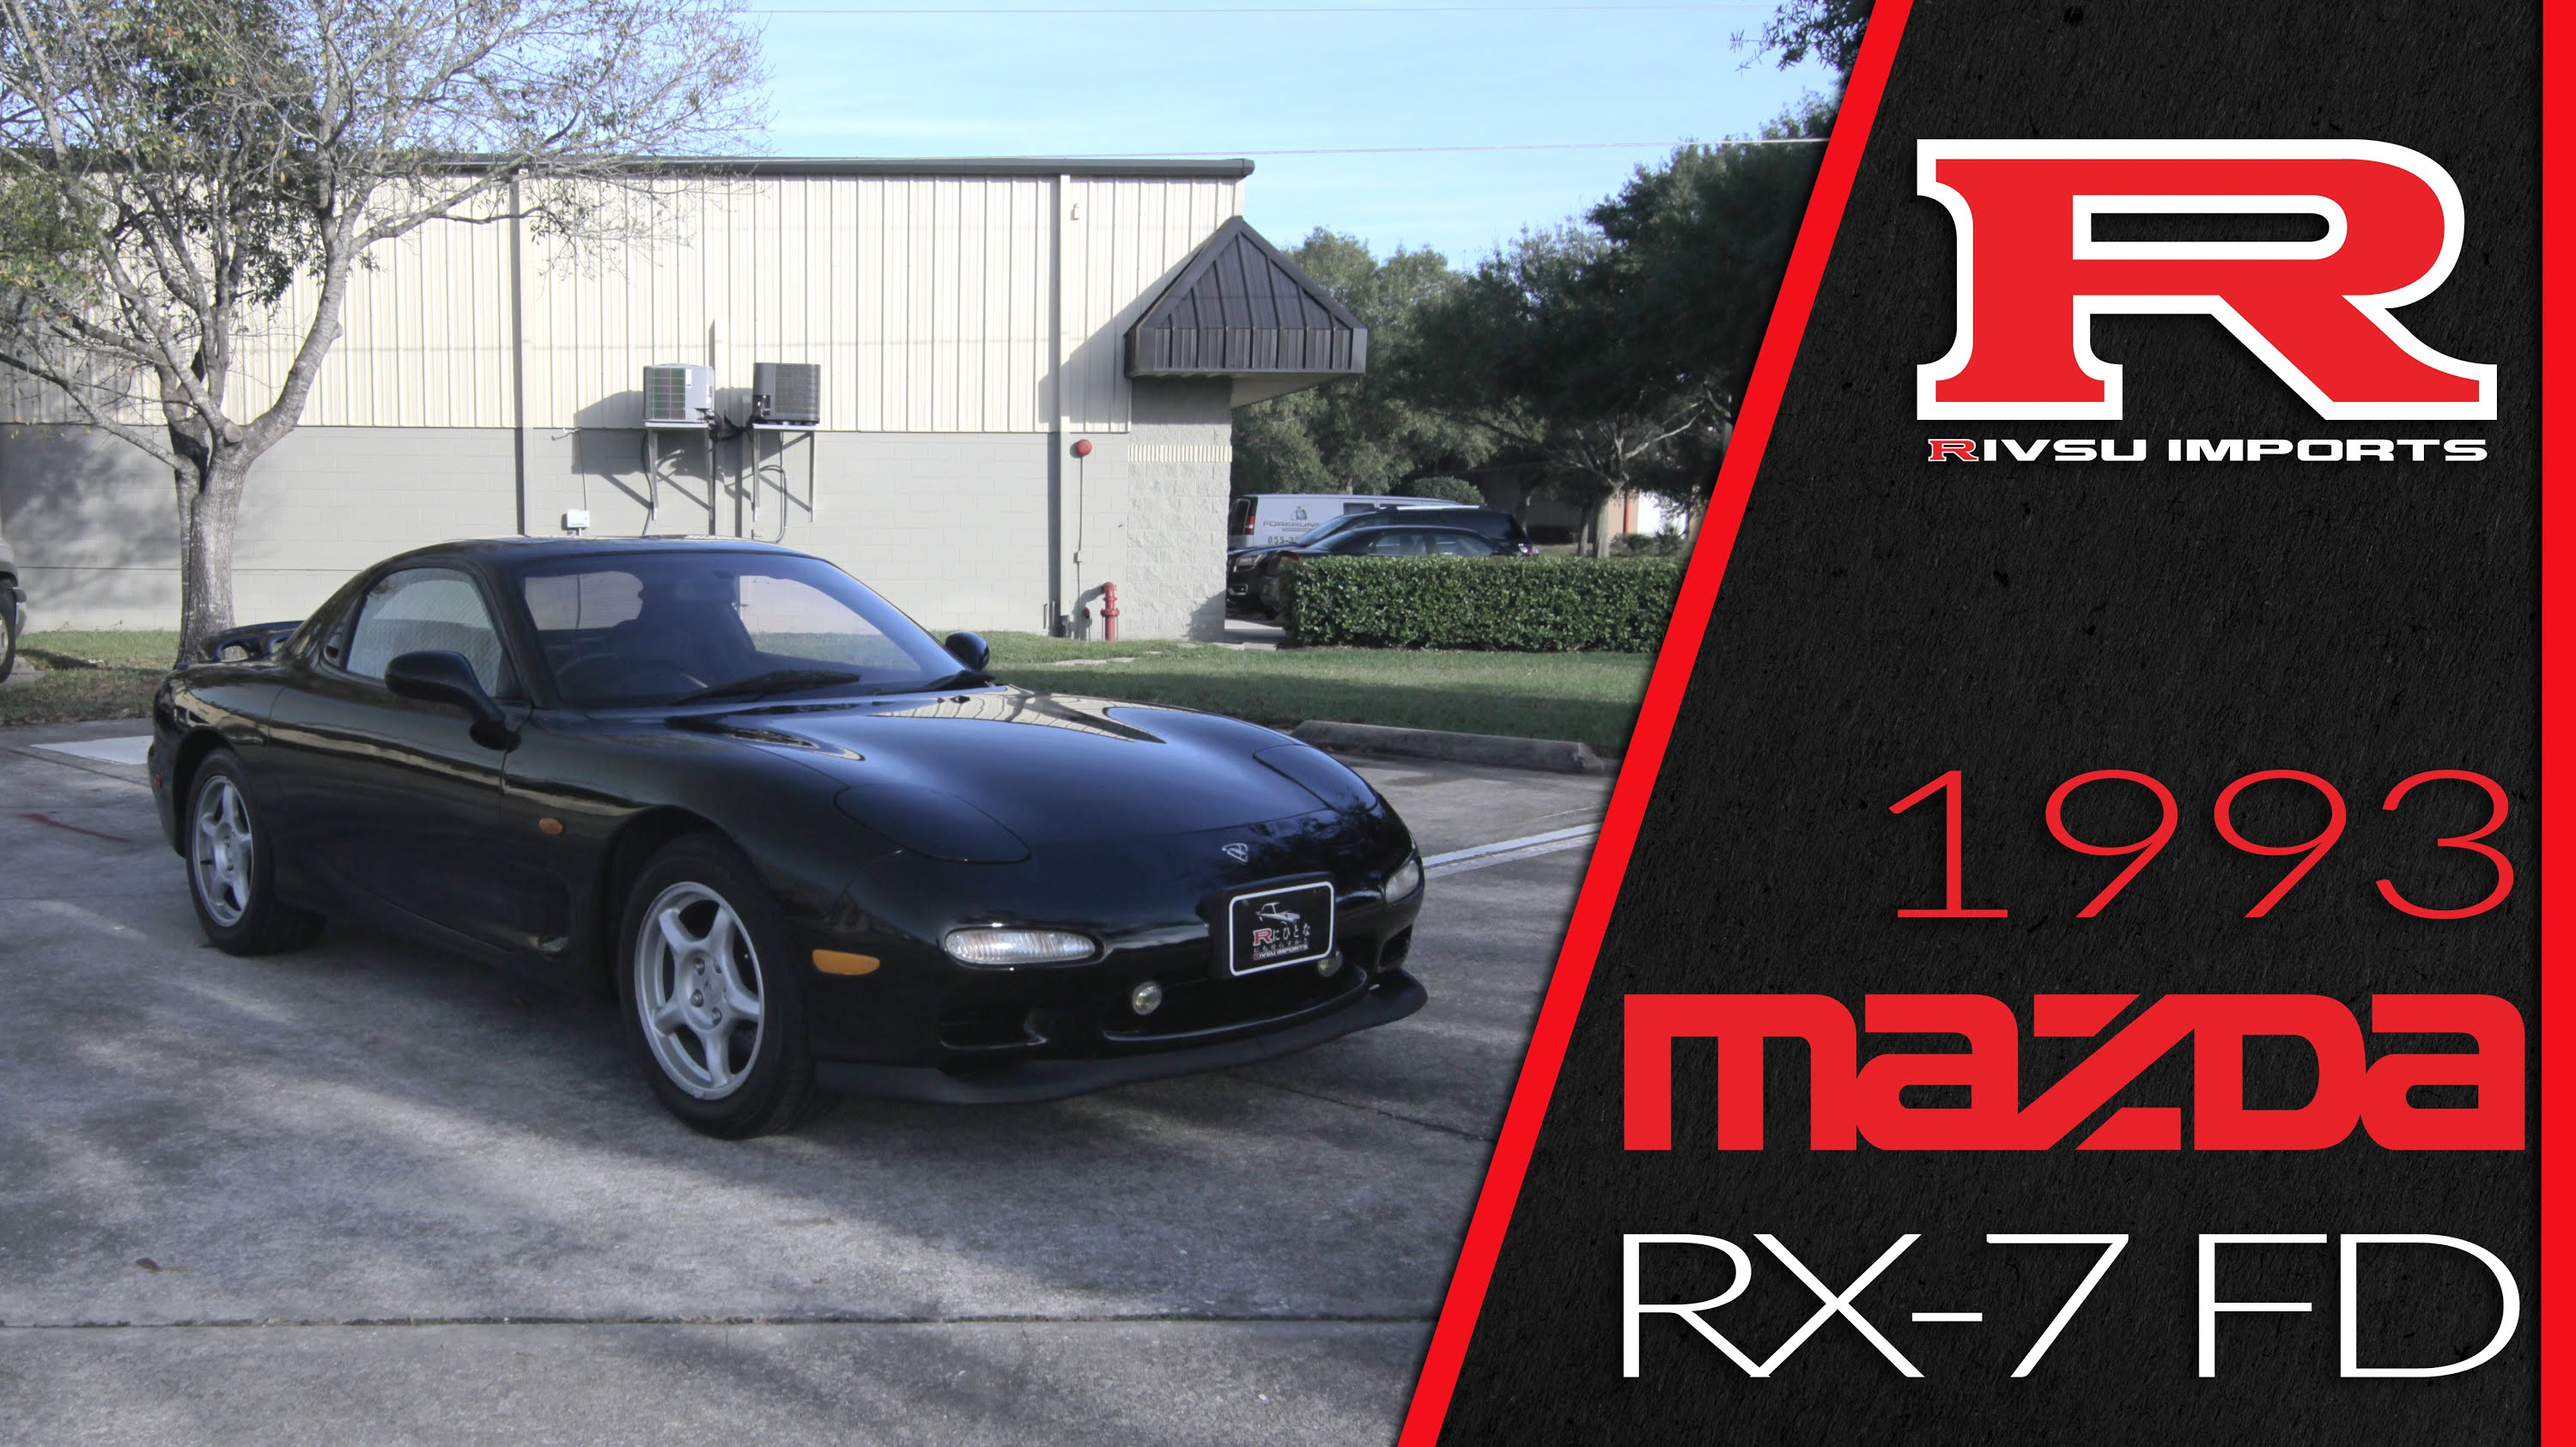 Picture of How to Change a Rotary Engine Oil (1993 Mazda RX 7)